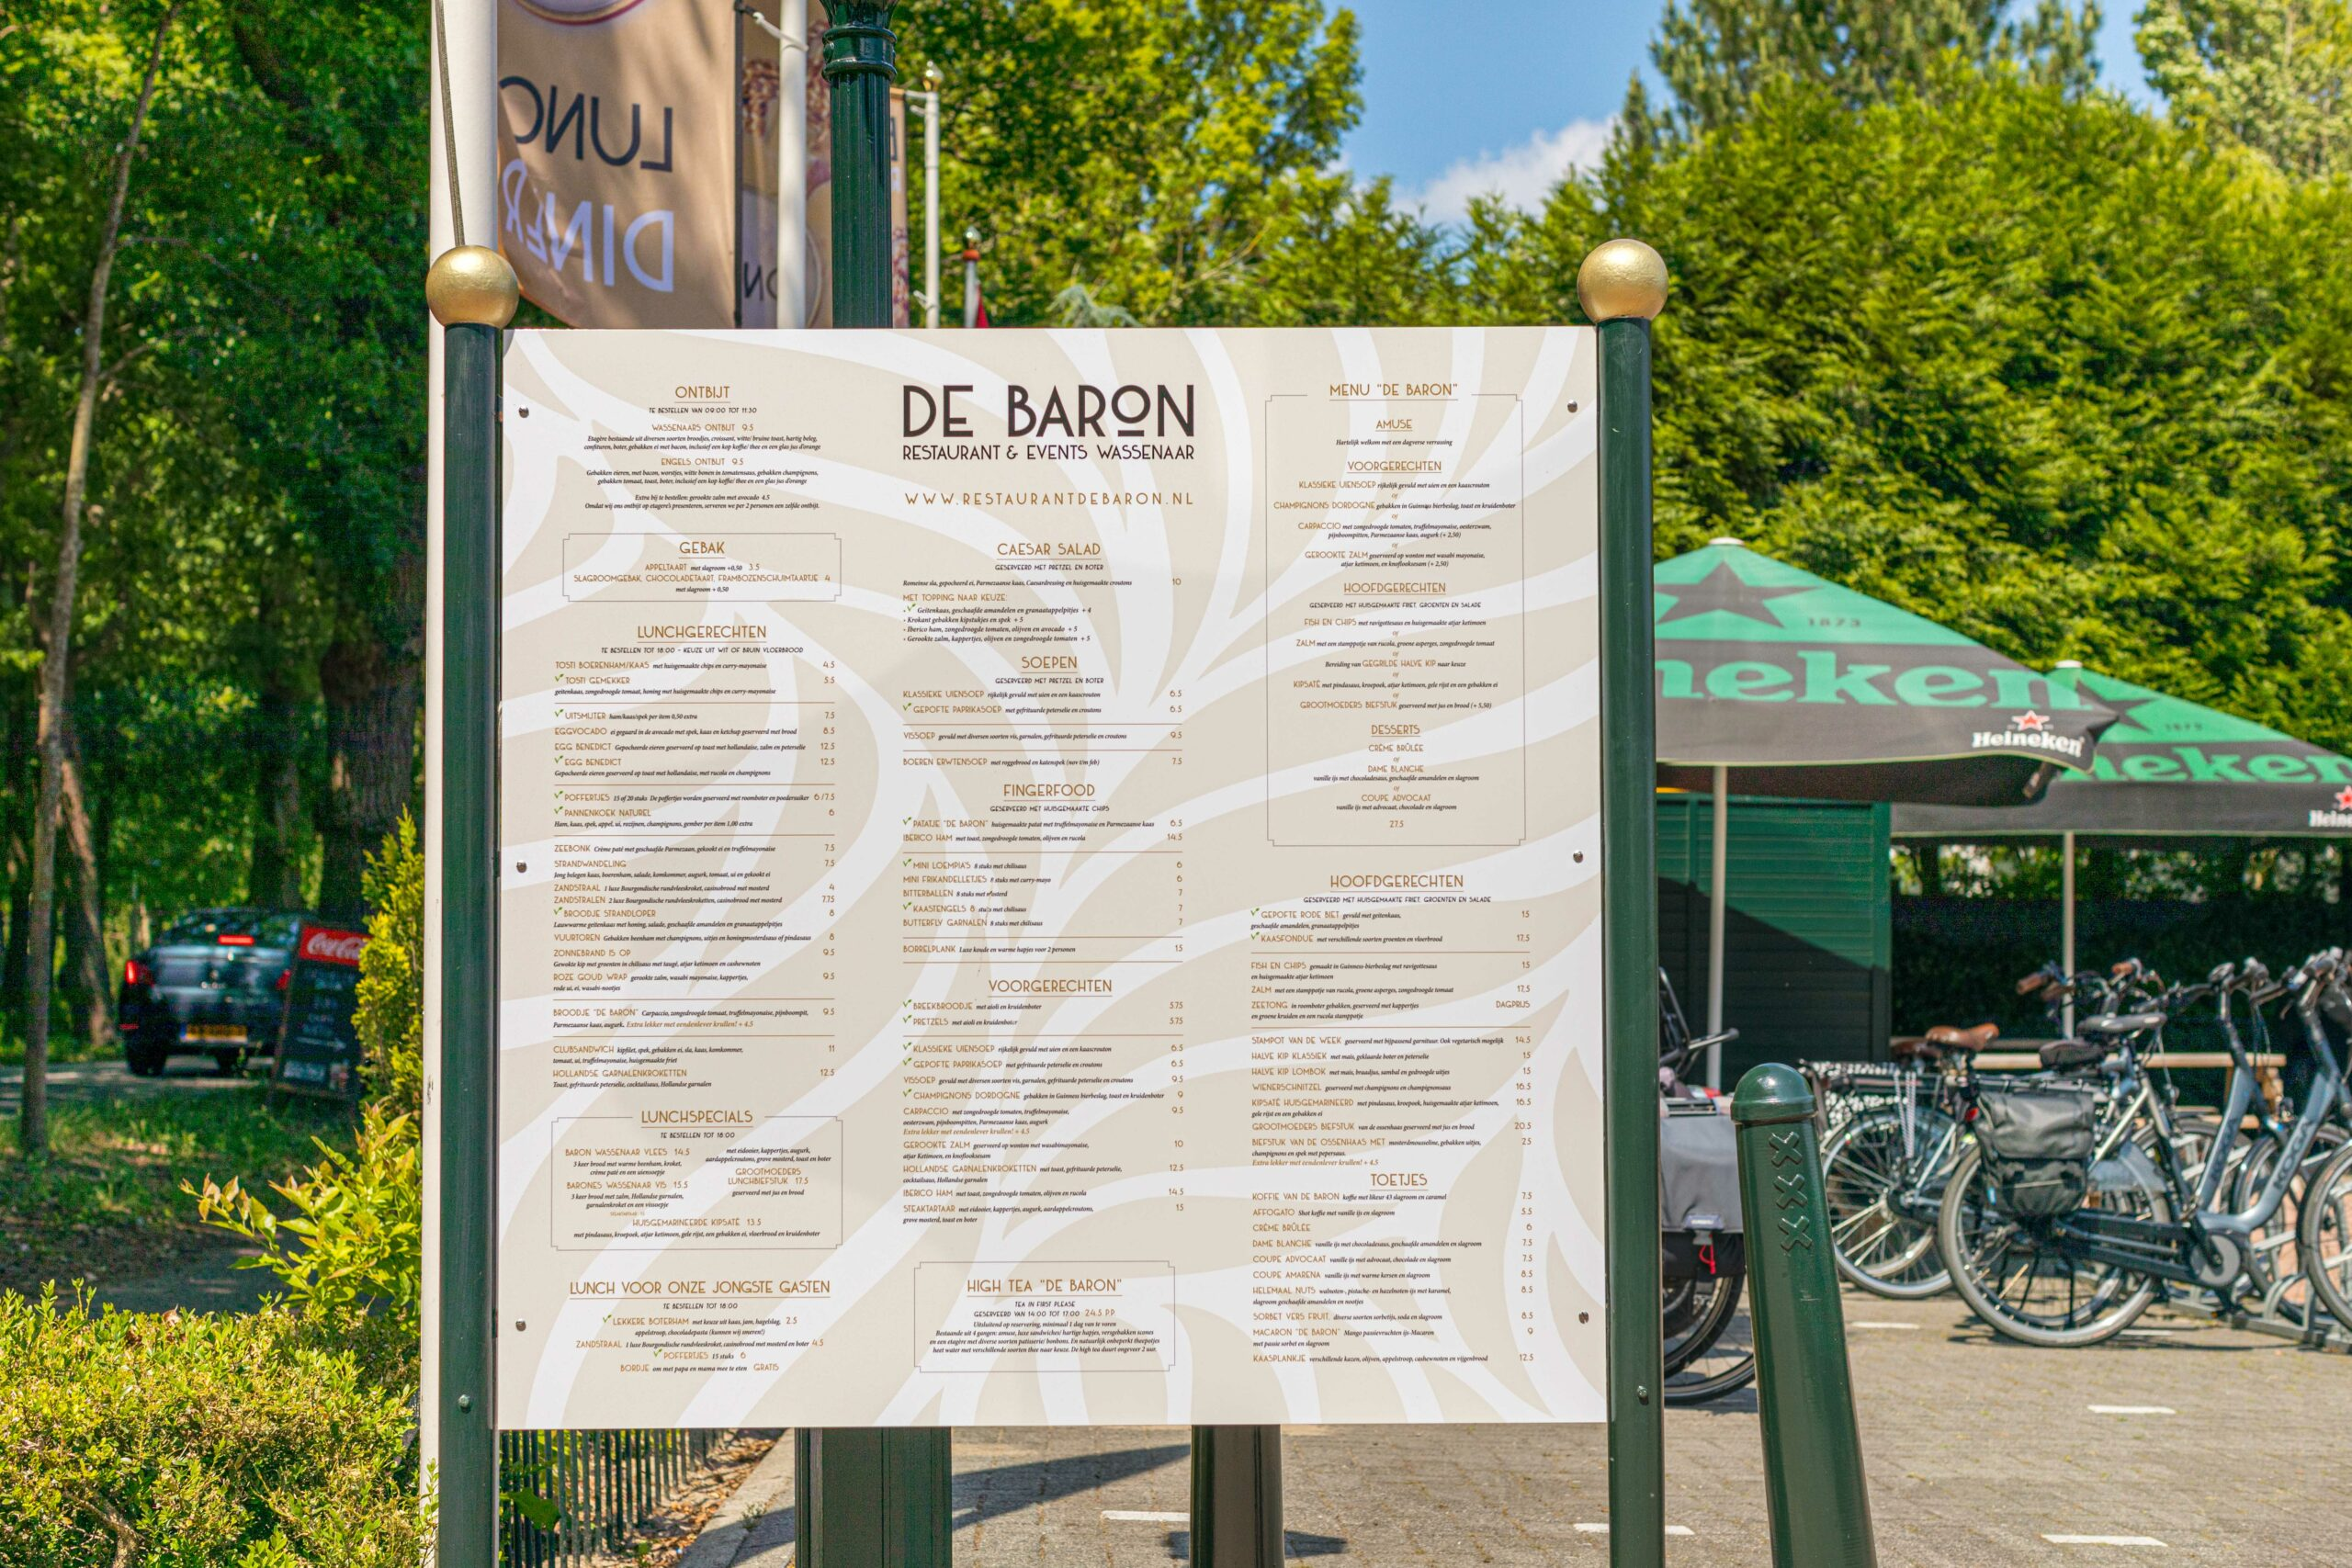 De Baron restaurant & events Wassenaar Menu Outside